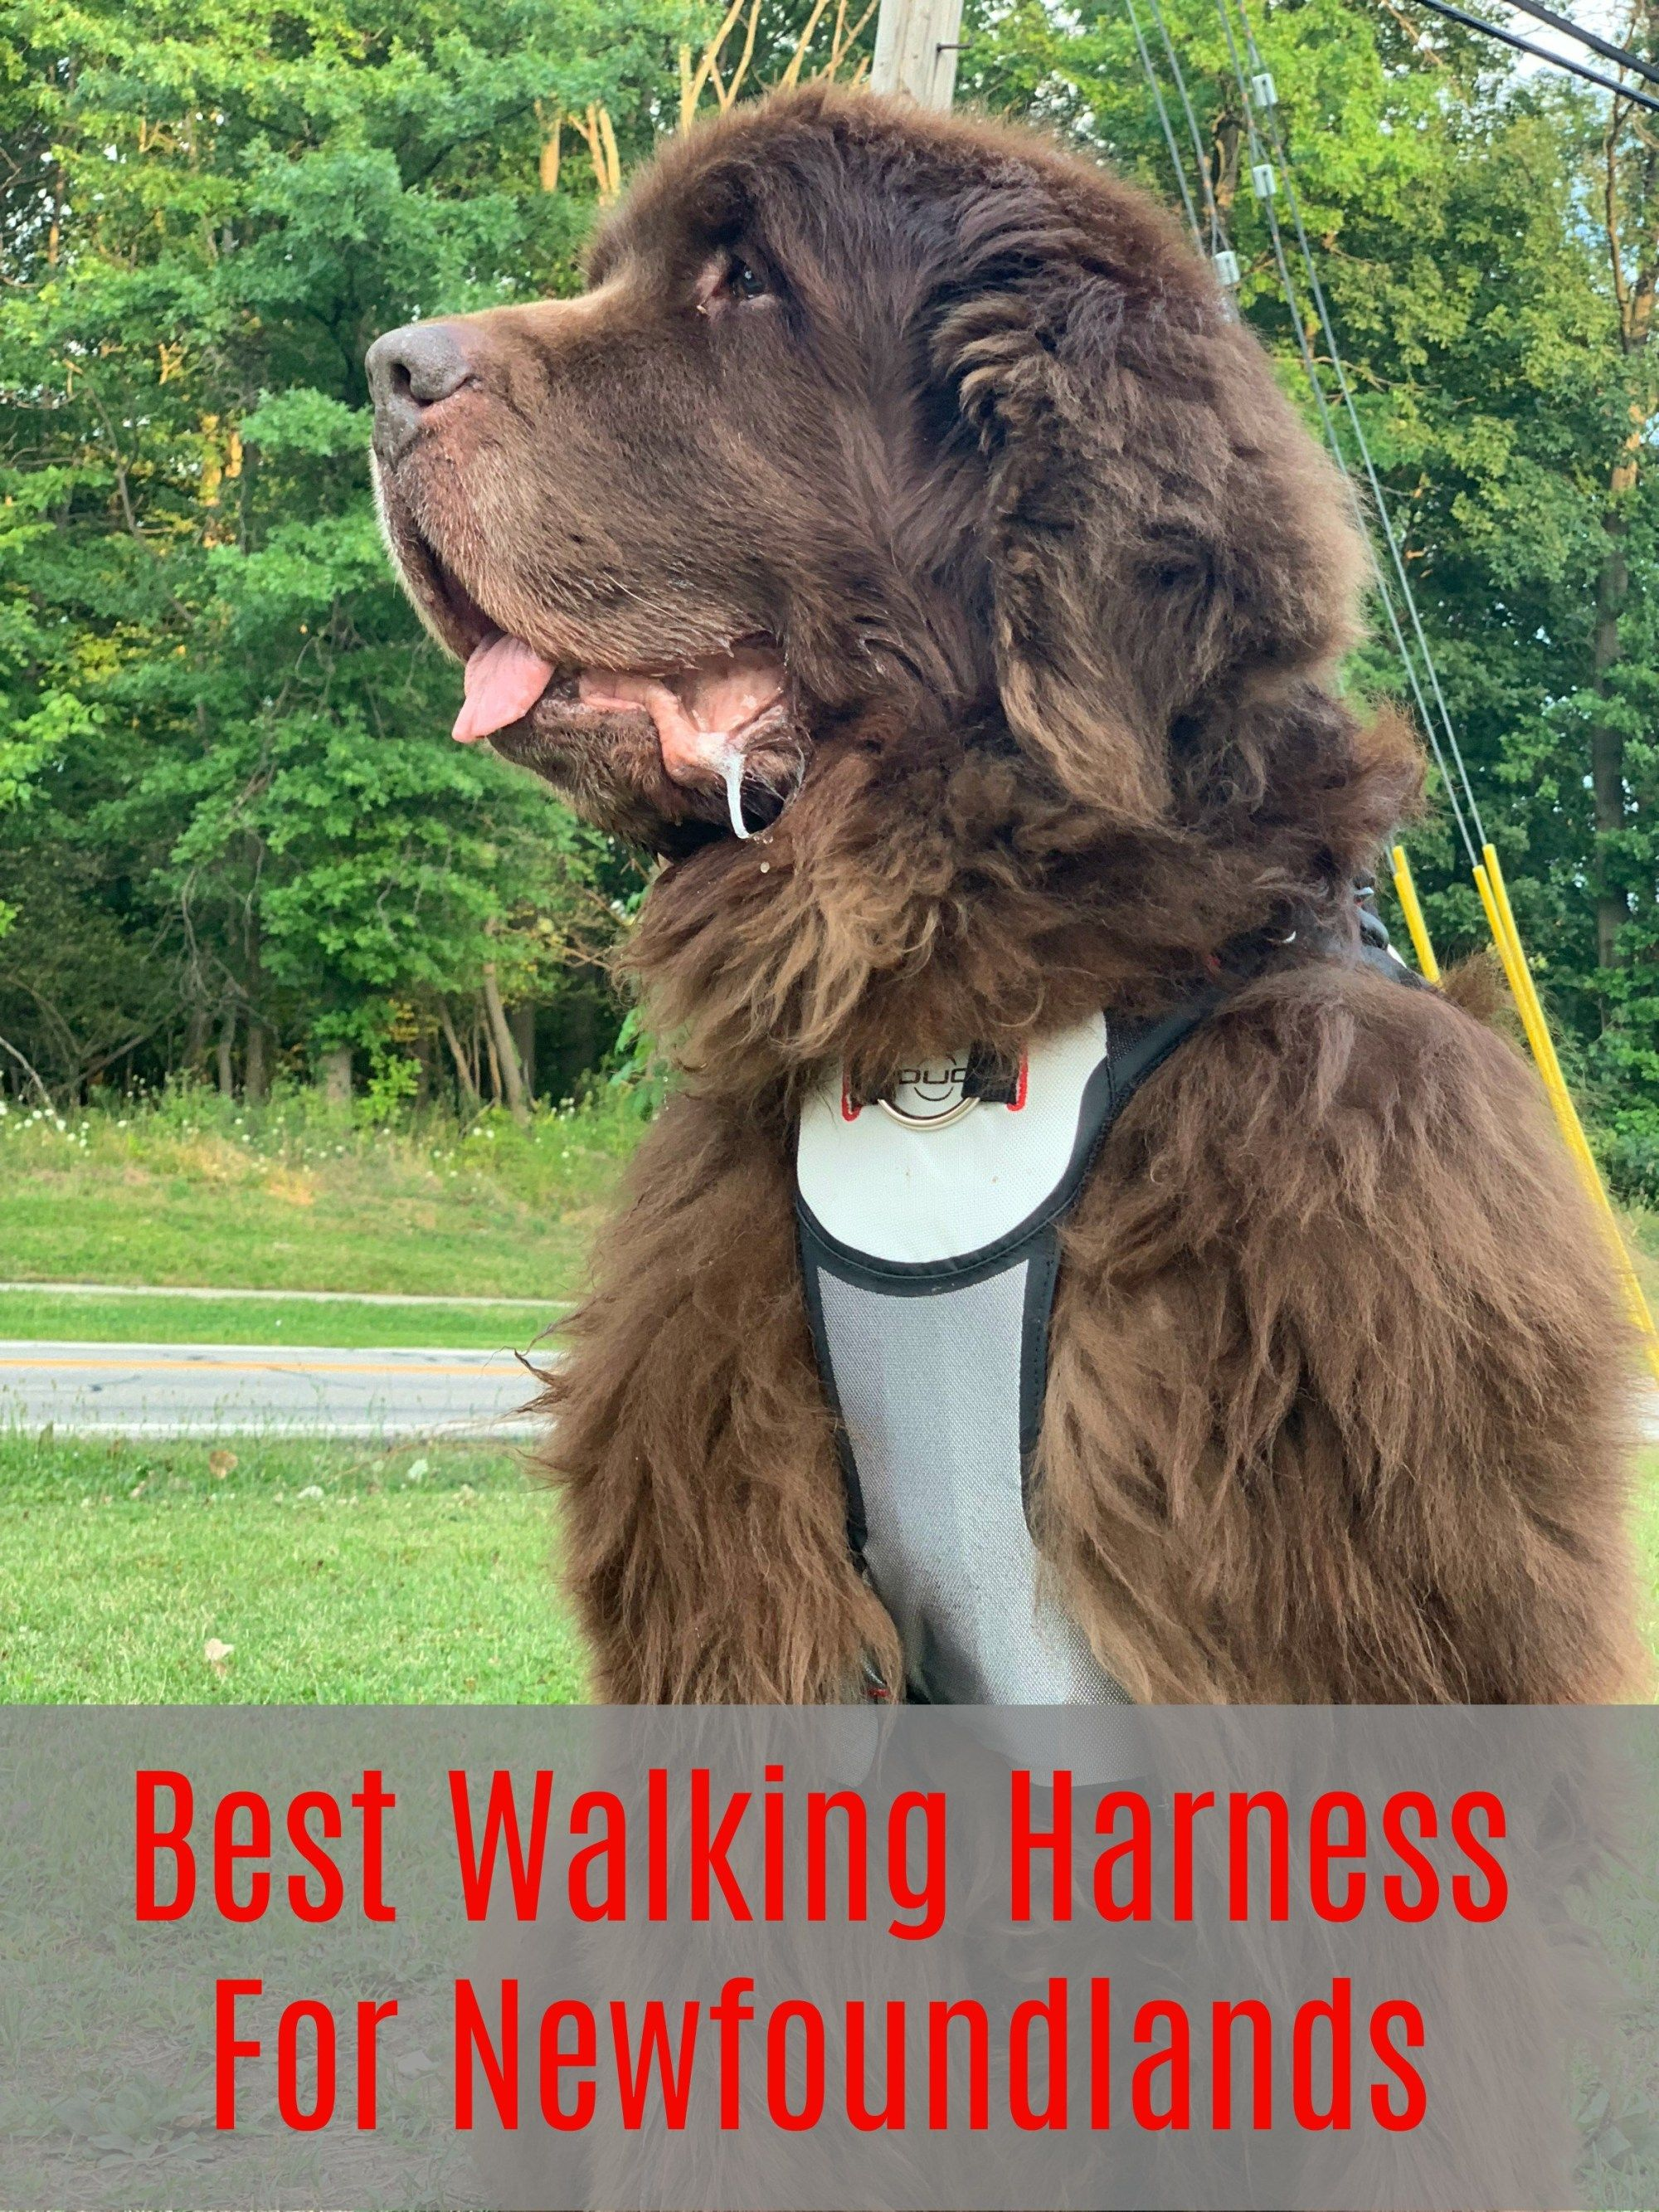 Best Walking Harnesses For Newfoundland Dogs My Brown Newfies Newfoundland Dog Walking Harness Newfoundland